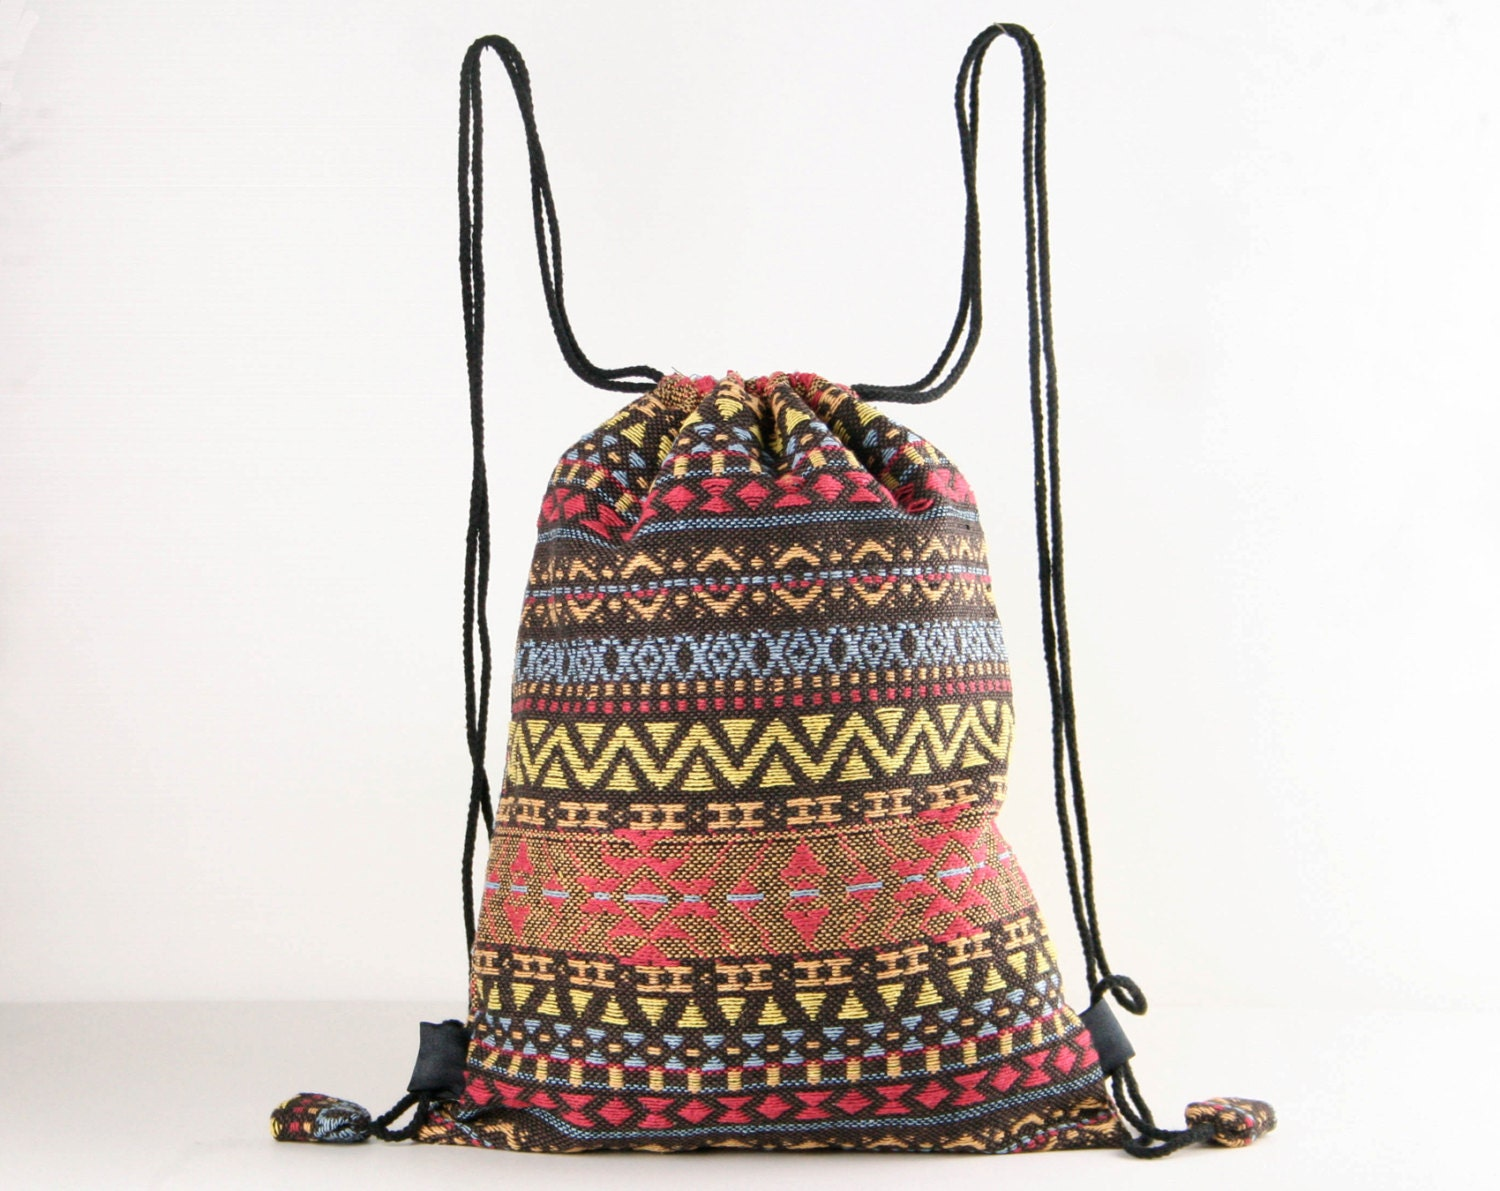 Native American Indian/Aztec/Inca Tribal Drawstring Backpack